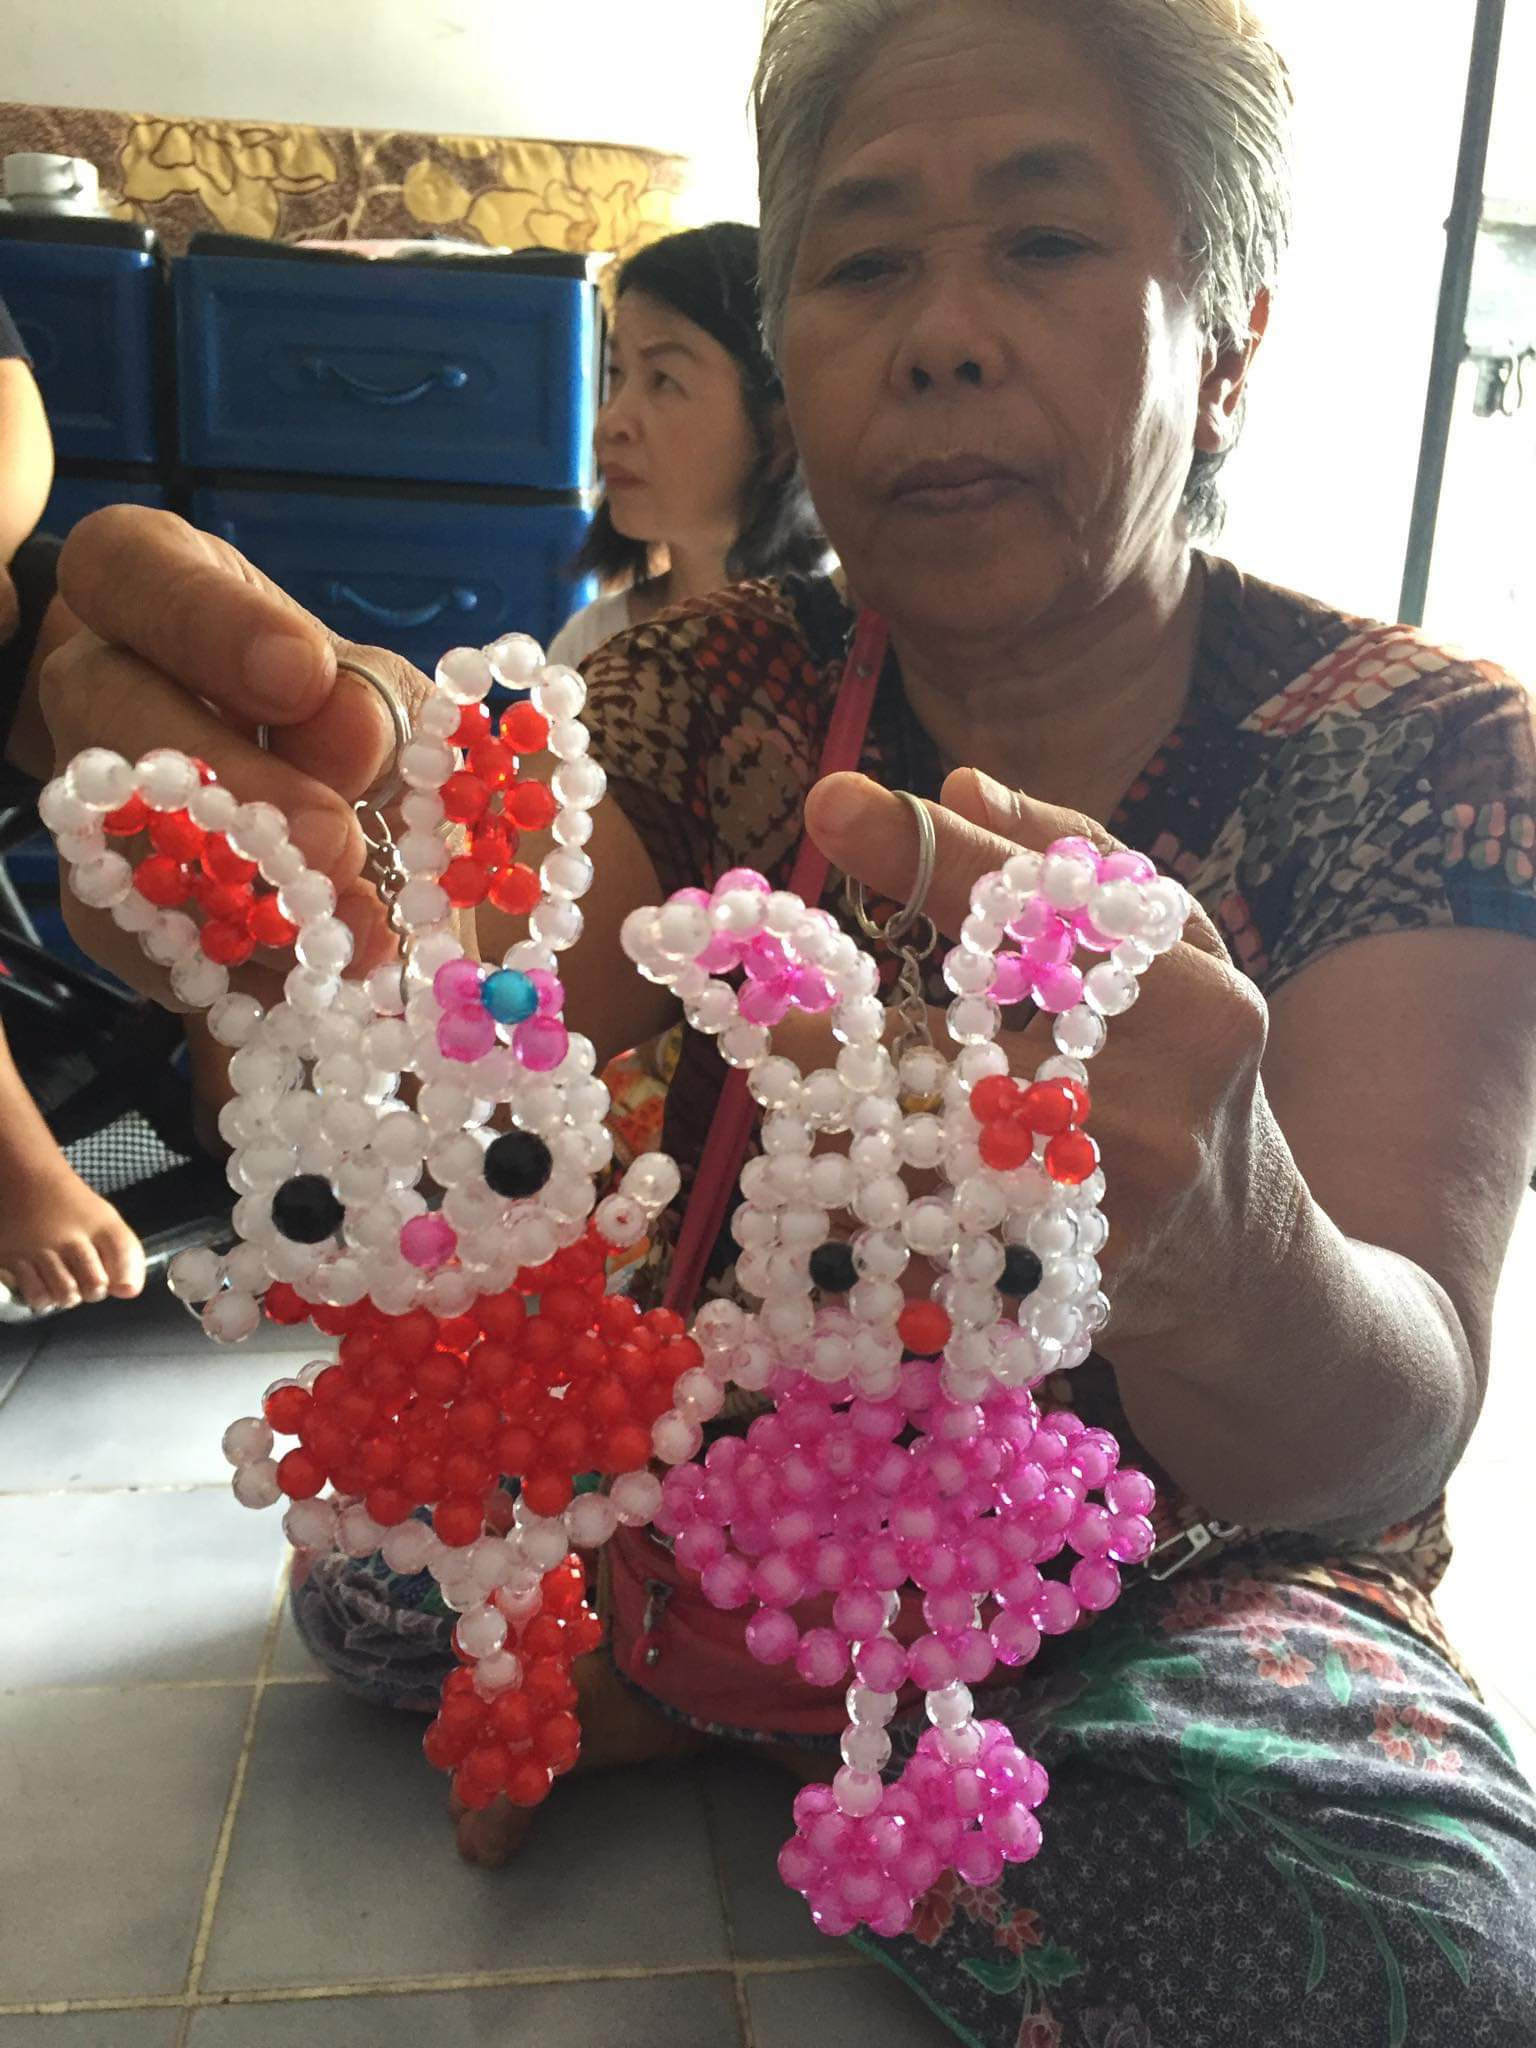 Monthly Appeal – Key chains for Mother's Day